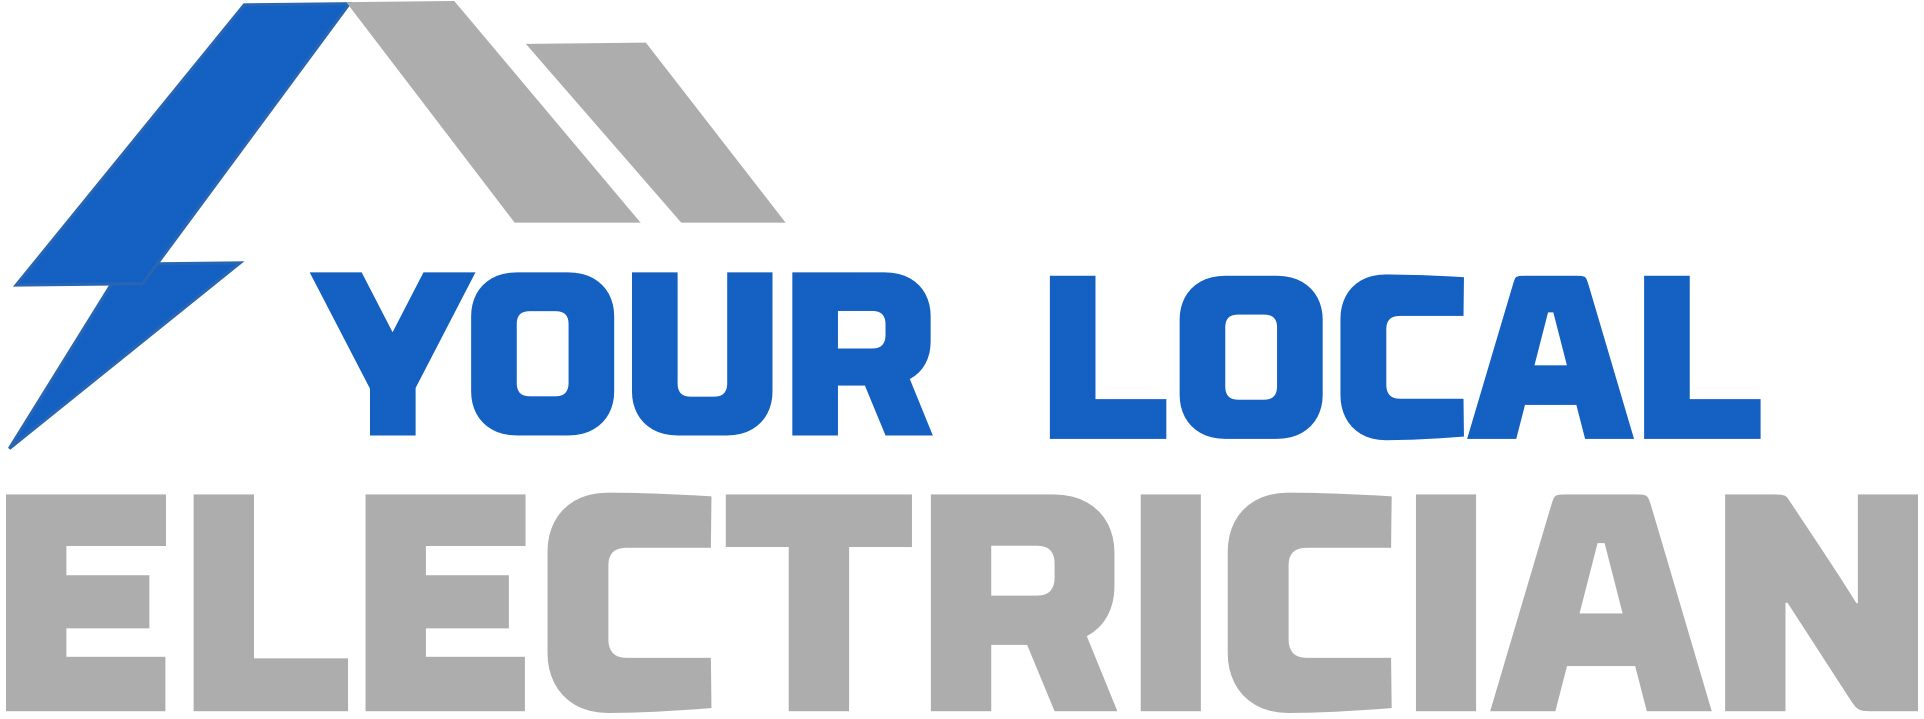 Your Local Electrician (Leeds)